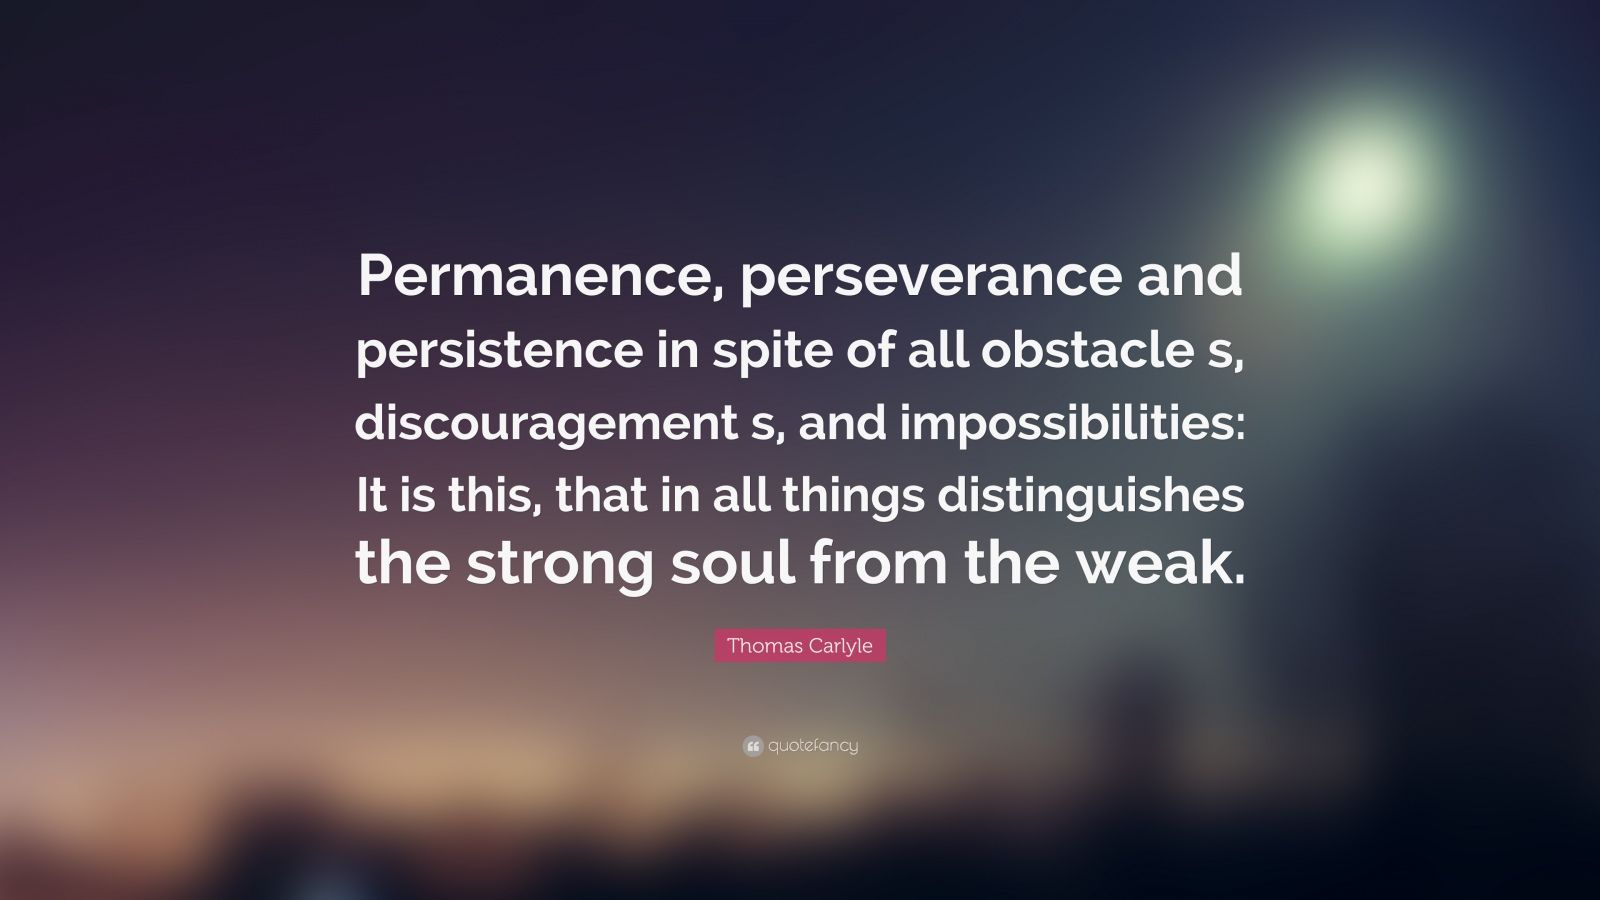 "Thomas Carlyle Quote: ""Permanence, perseverance and persistence in spite of all obstacle s, discouragement s, and impossibilities: It is this, that in all things distinguishes the strong soul from the weak."""